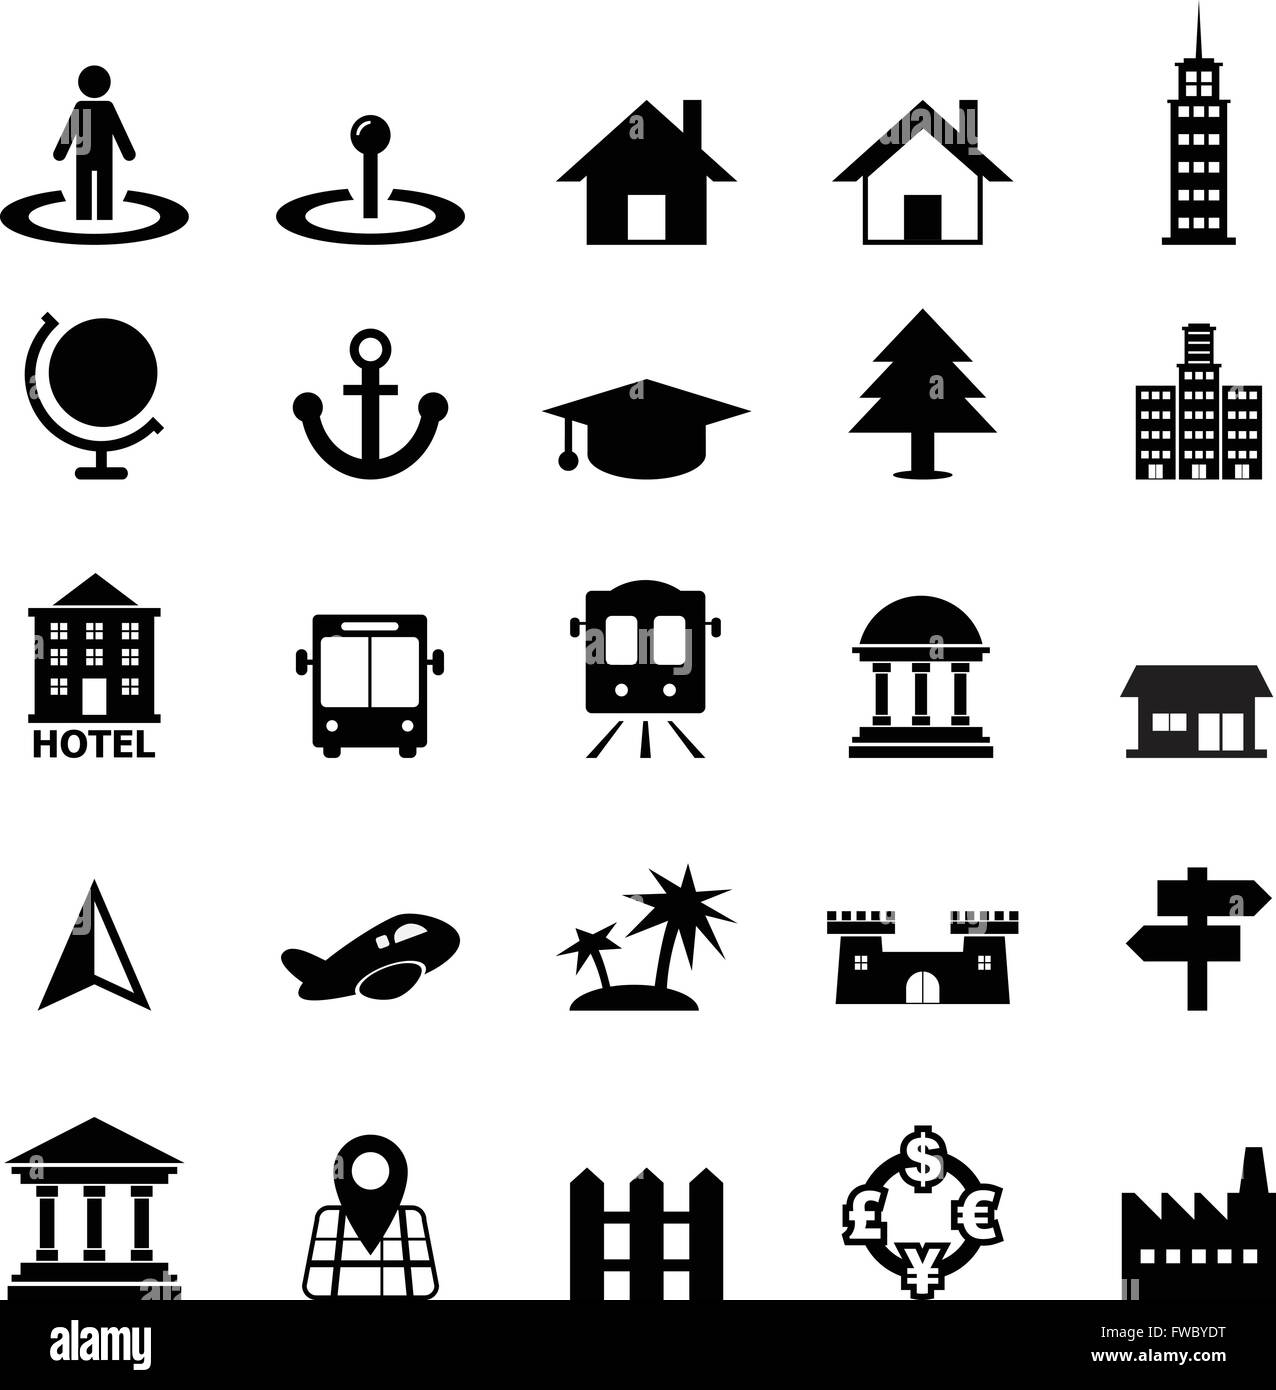 Place icon - Stock Image